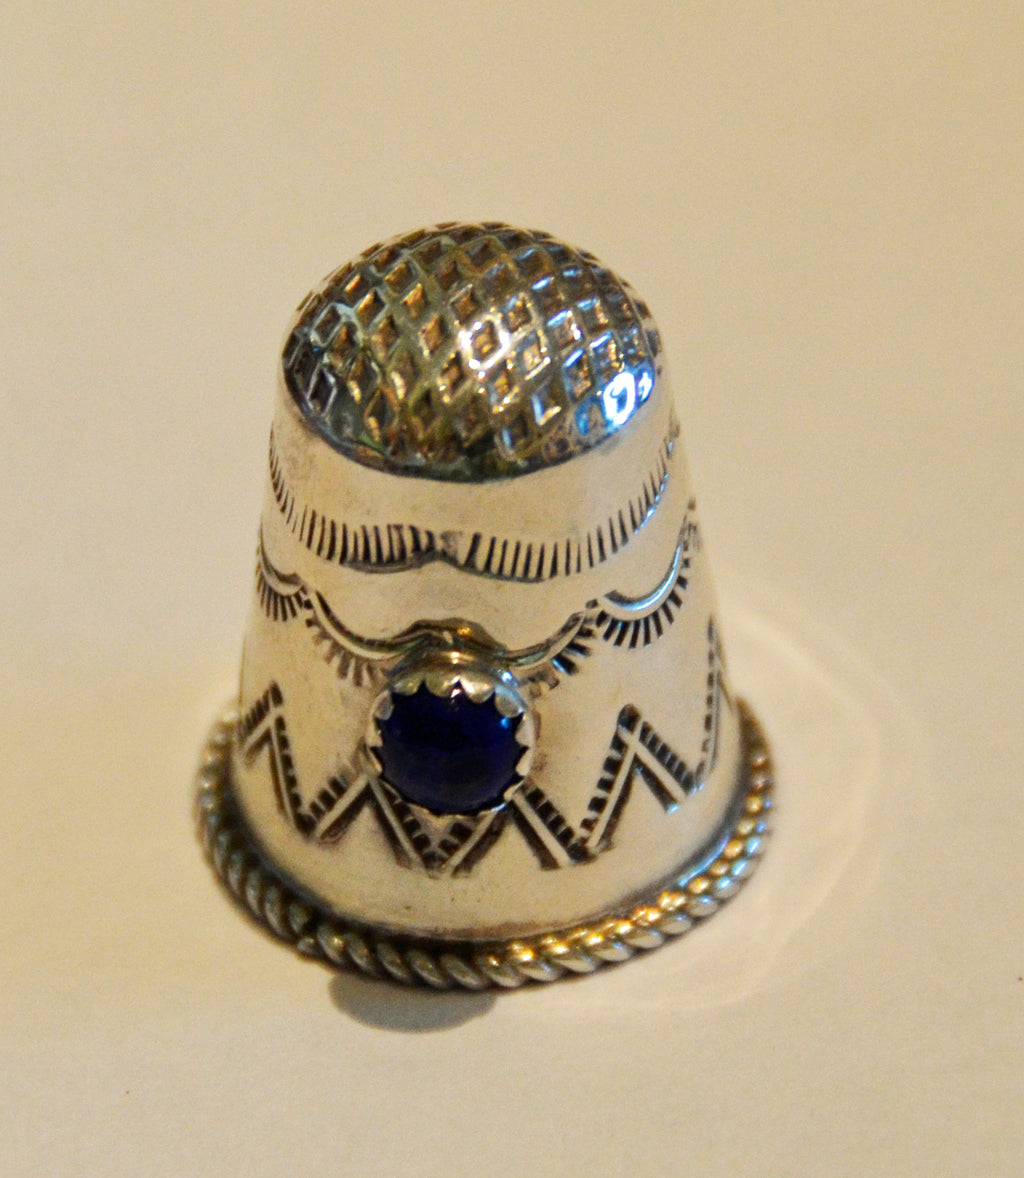 Native American Jewelry : Navajo:  Sterling Silver Thimble - Getzwiller's Nizhoni Ranch Gallery